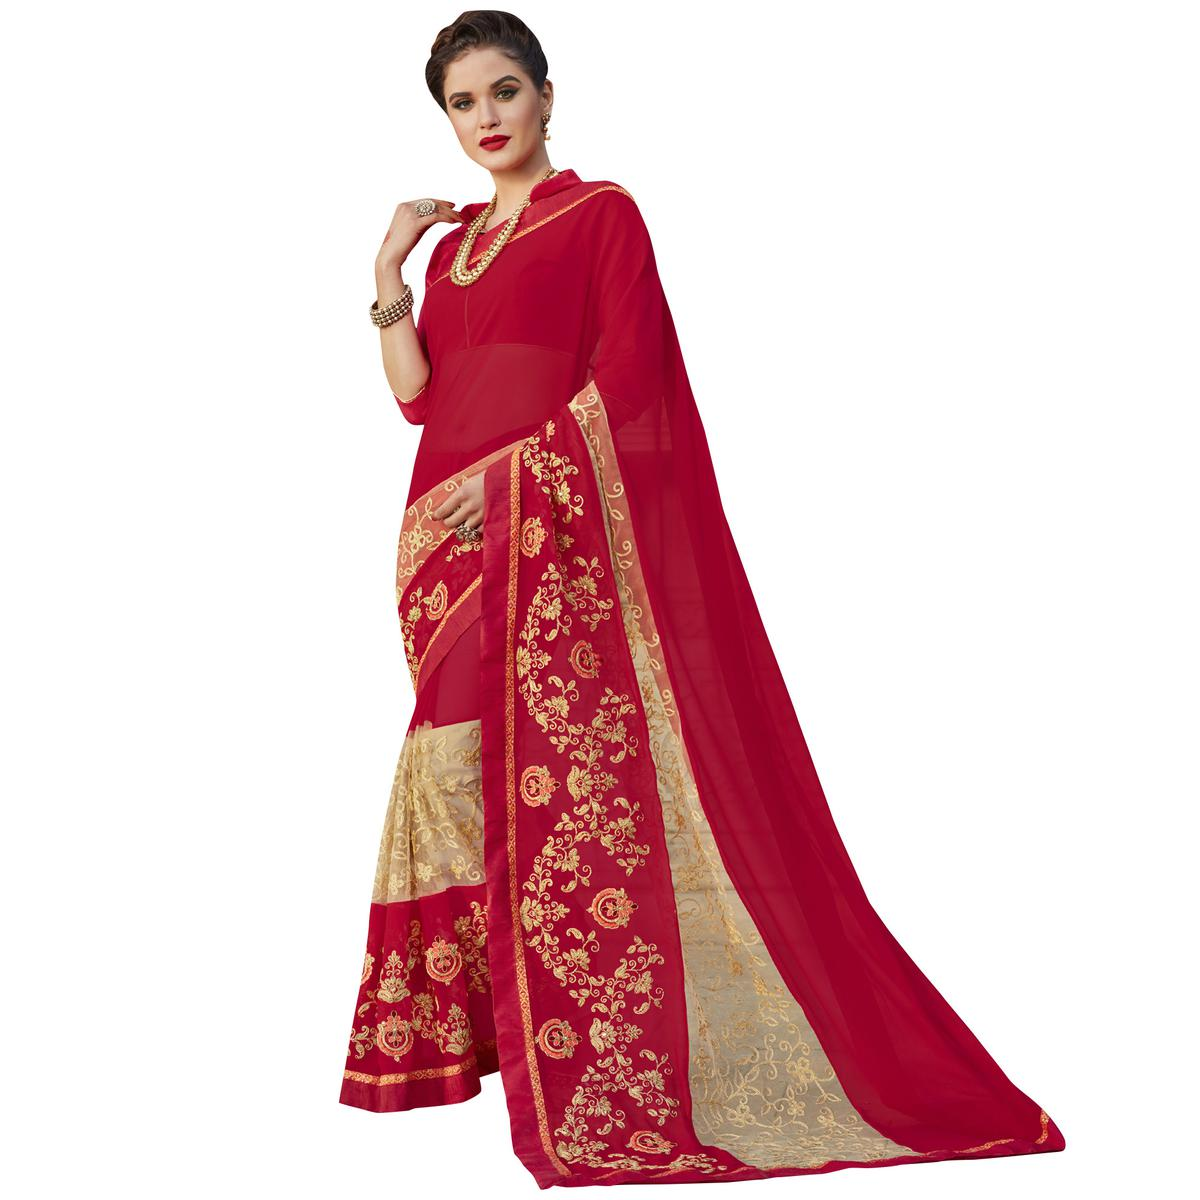 Ravishing Red Colored Party Wear Embroidered Georgette Saree